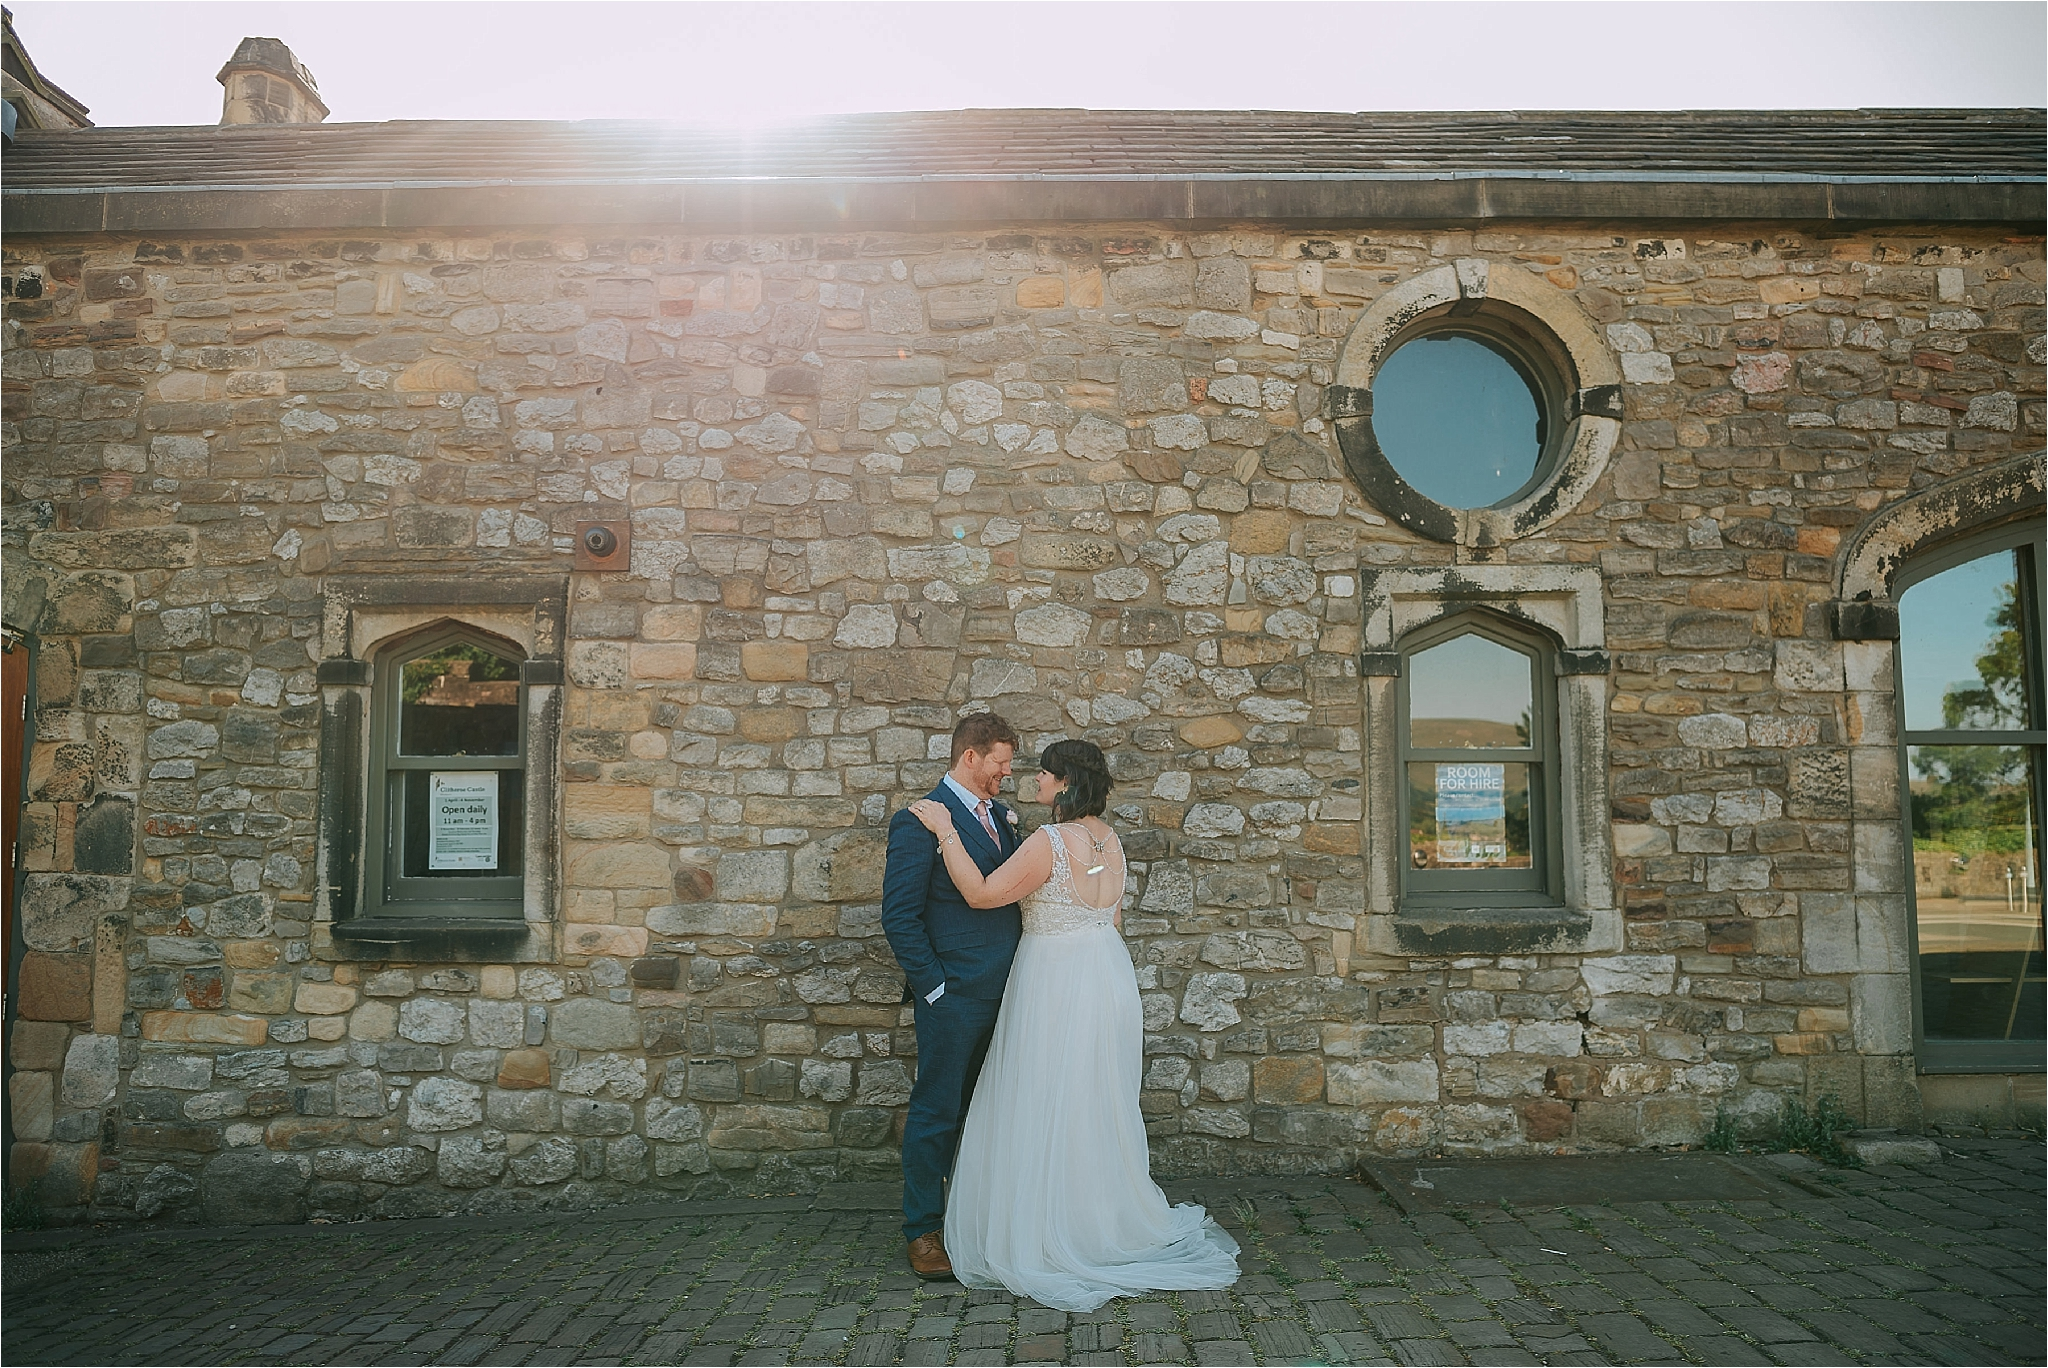 Couple at clitheroe castle after their wedding